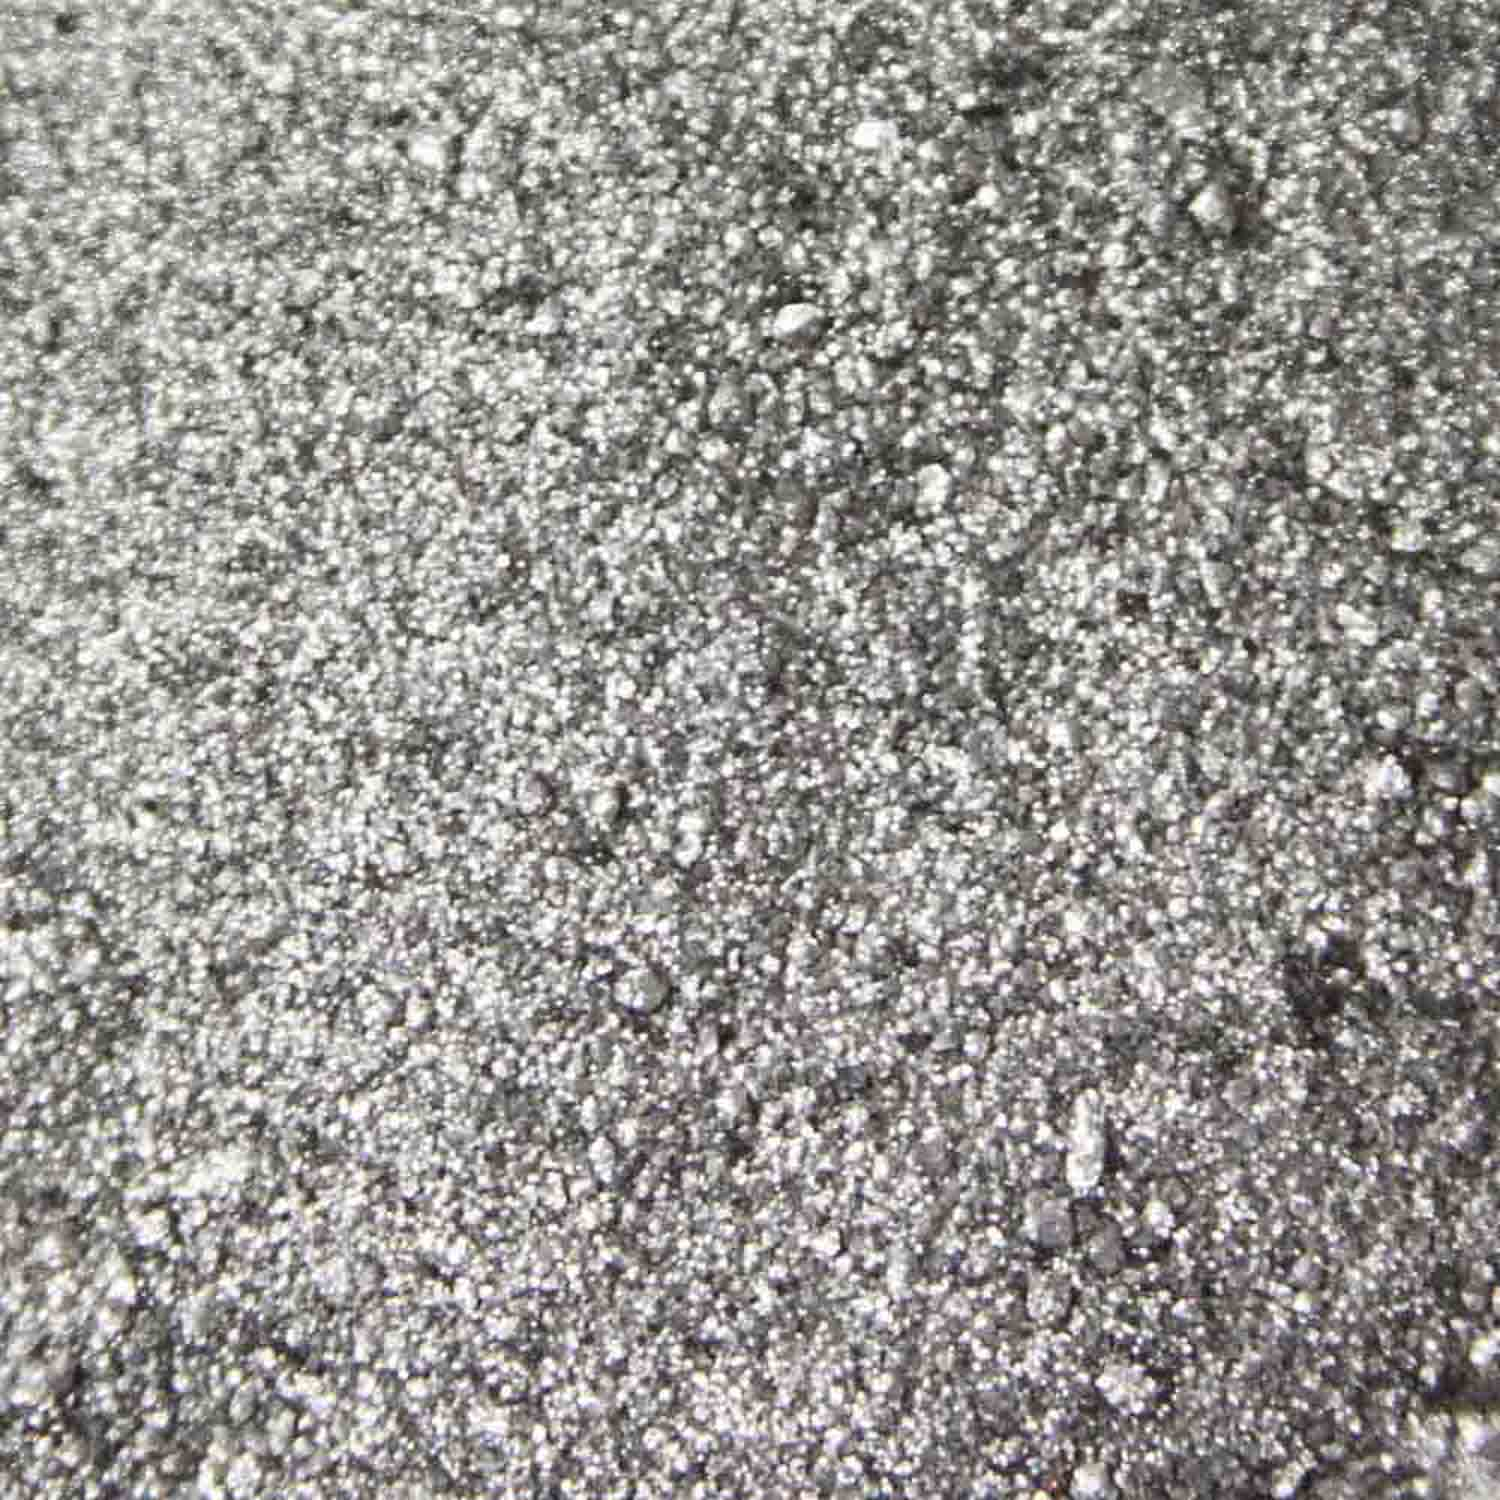 Imperial Metallic Silver Dust